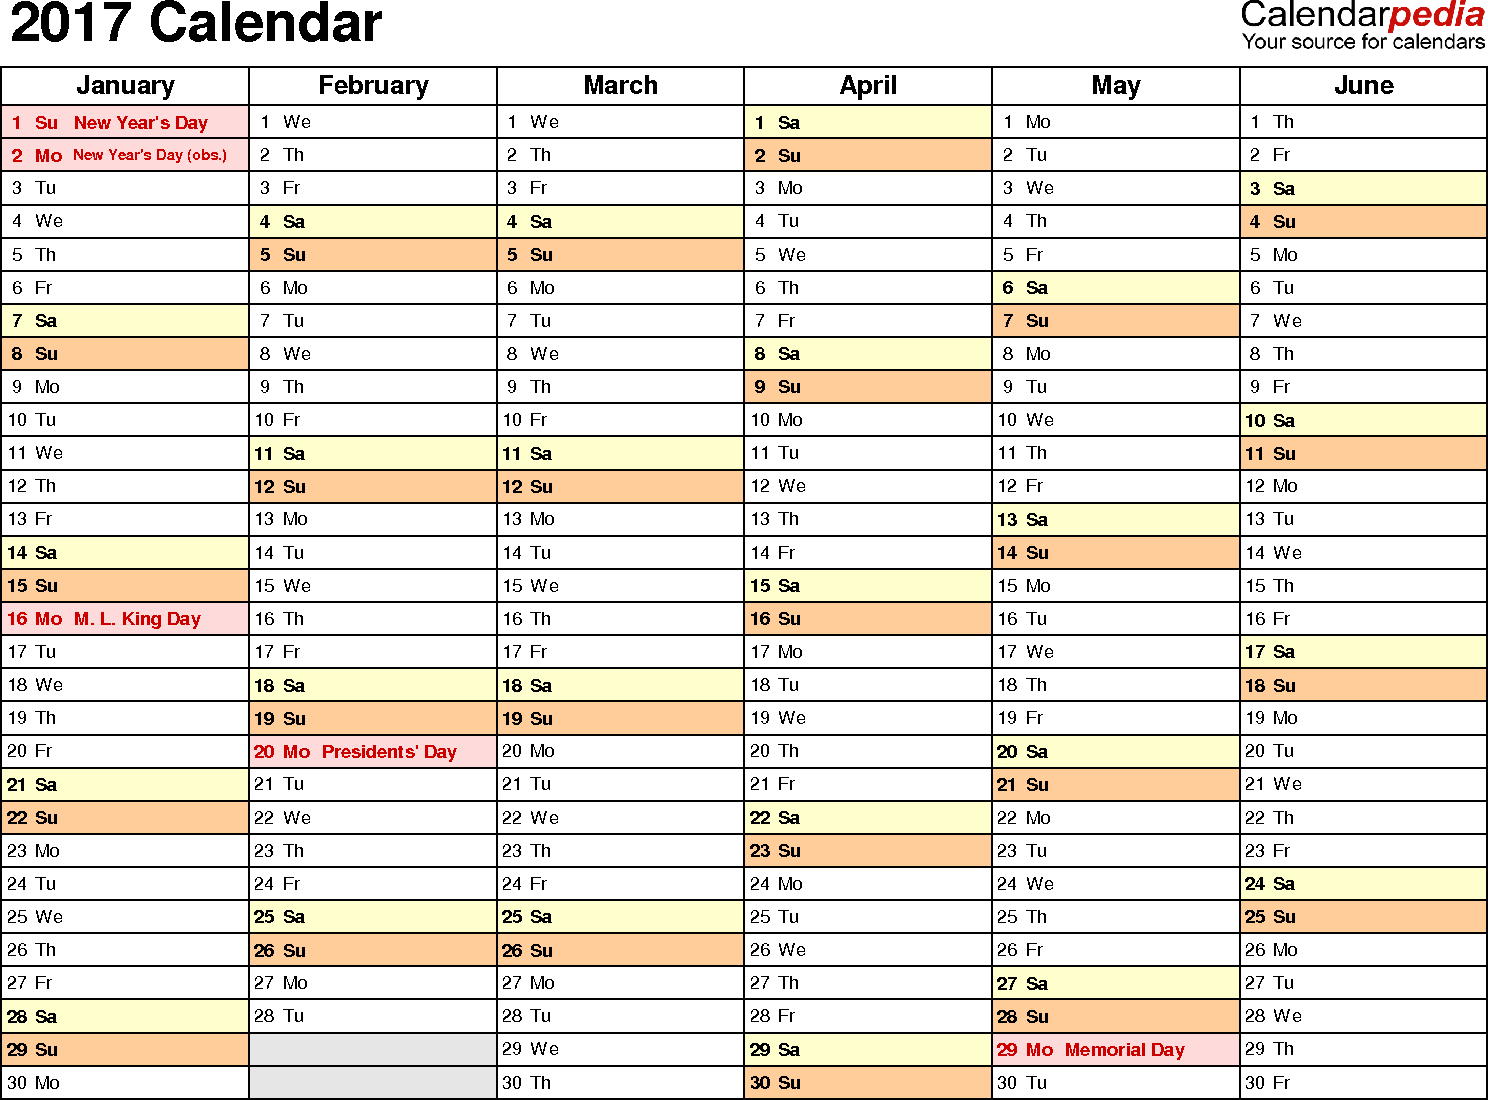 Ediblewildsus  Sweet  Calendar  Download  Free Printable Excel Templates Xls With Engaging Template   Calendar For Excel Months Horizontally  Pages Landscape Orientation With Astounding Percentage Decrease Formula Excel Also Excel Sumif Not Working In Addition How To Use Now Function In Excel And Sort Excel Data As Well As Excel  Add Title To Chart Additionally Math Symbols In Excel From Calendarpediacom With Ediblewildsus  Engaging  Calendar  Download  Free Printable Excel Templates Xls With Astounding Template   Calendar For Excel Months Horizontally  Pages Landscape Orientation And Sweet Percentage Decrease Formula Excel Also Excel Sumif Not Working In Addition How To Use Now Function In Excel From Calendarpediacom